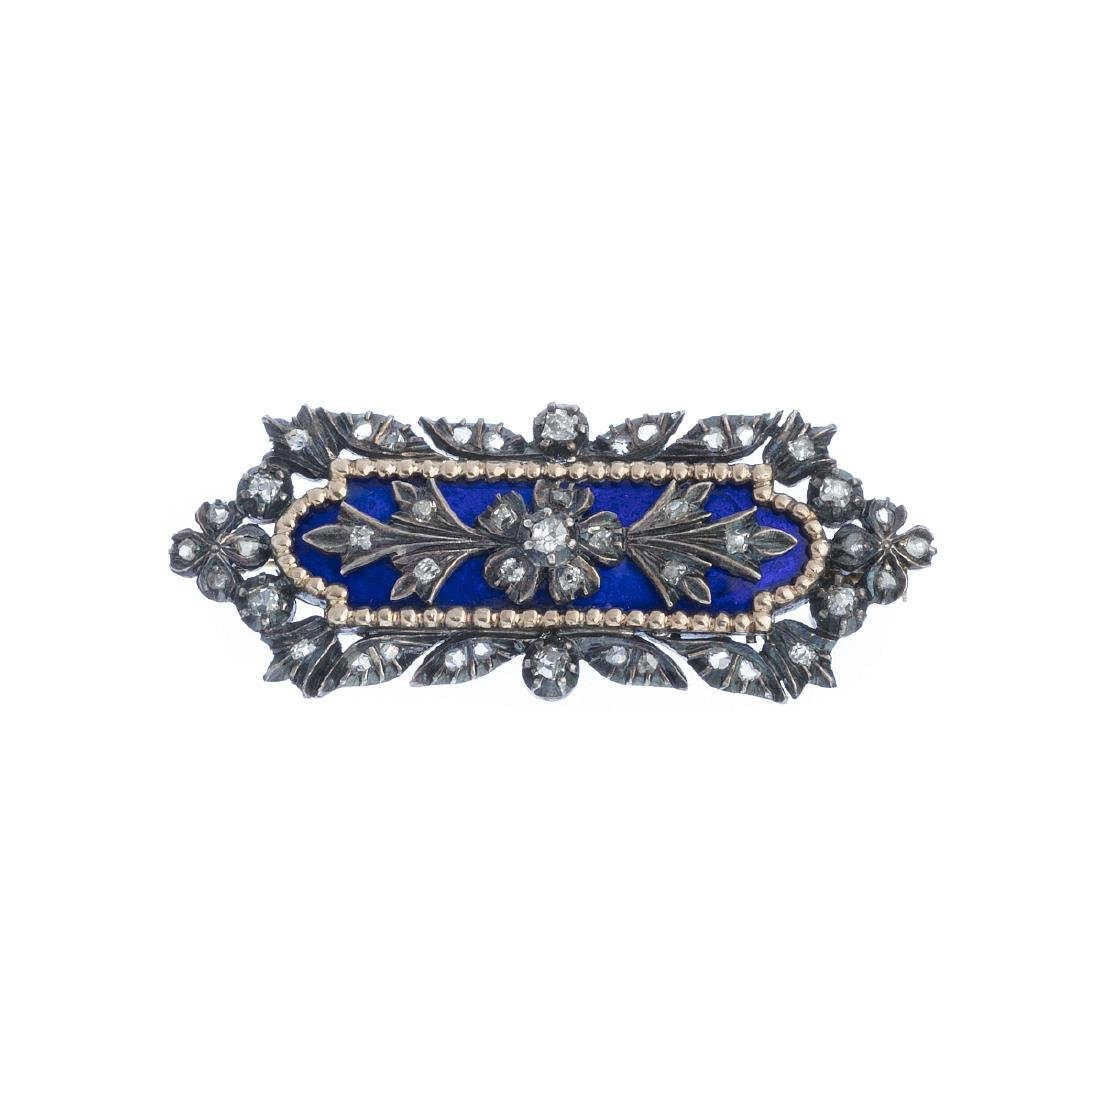 Gold and silver brooch with diamonds and enamels